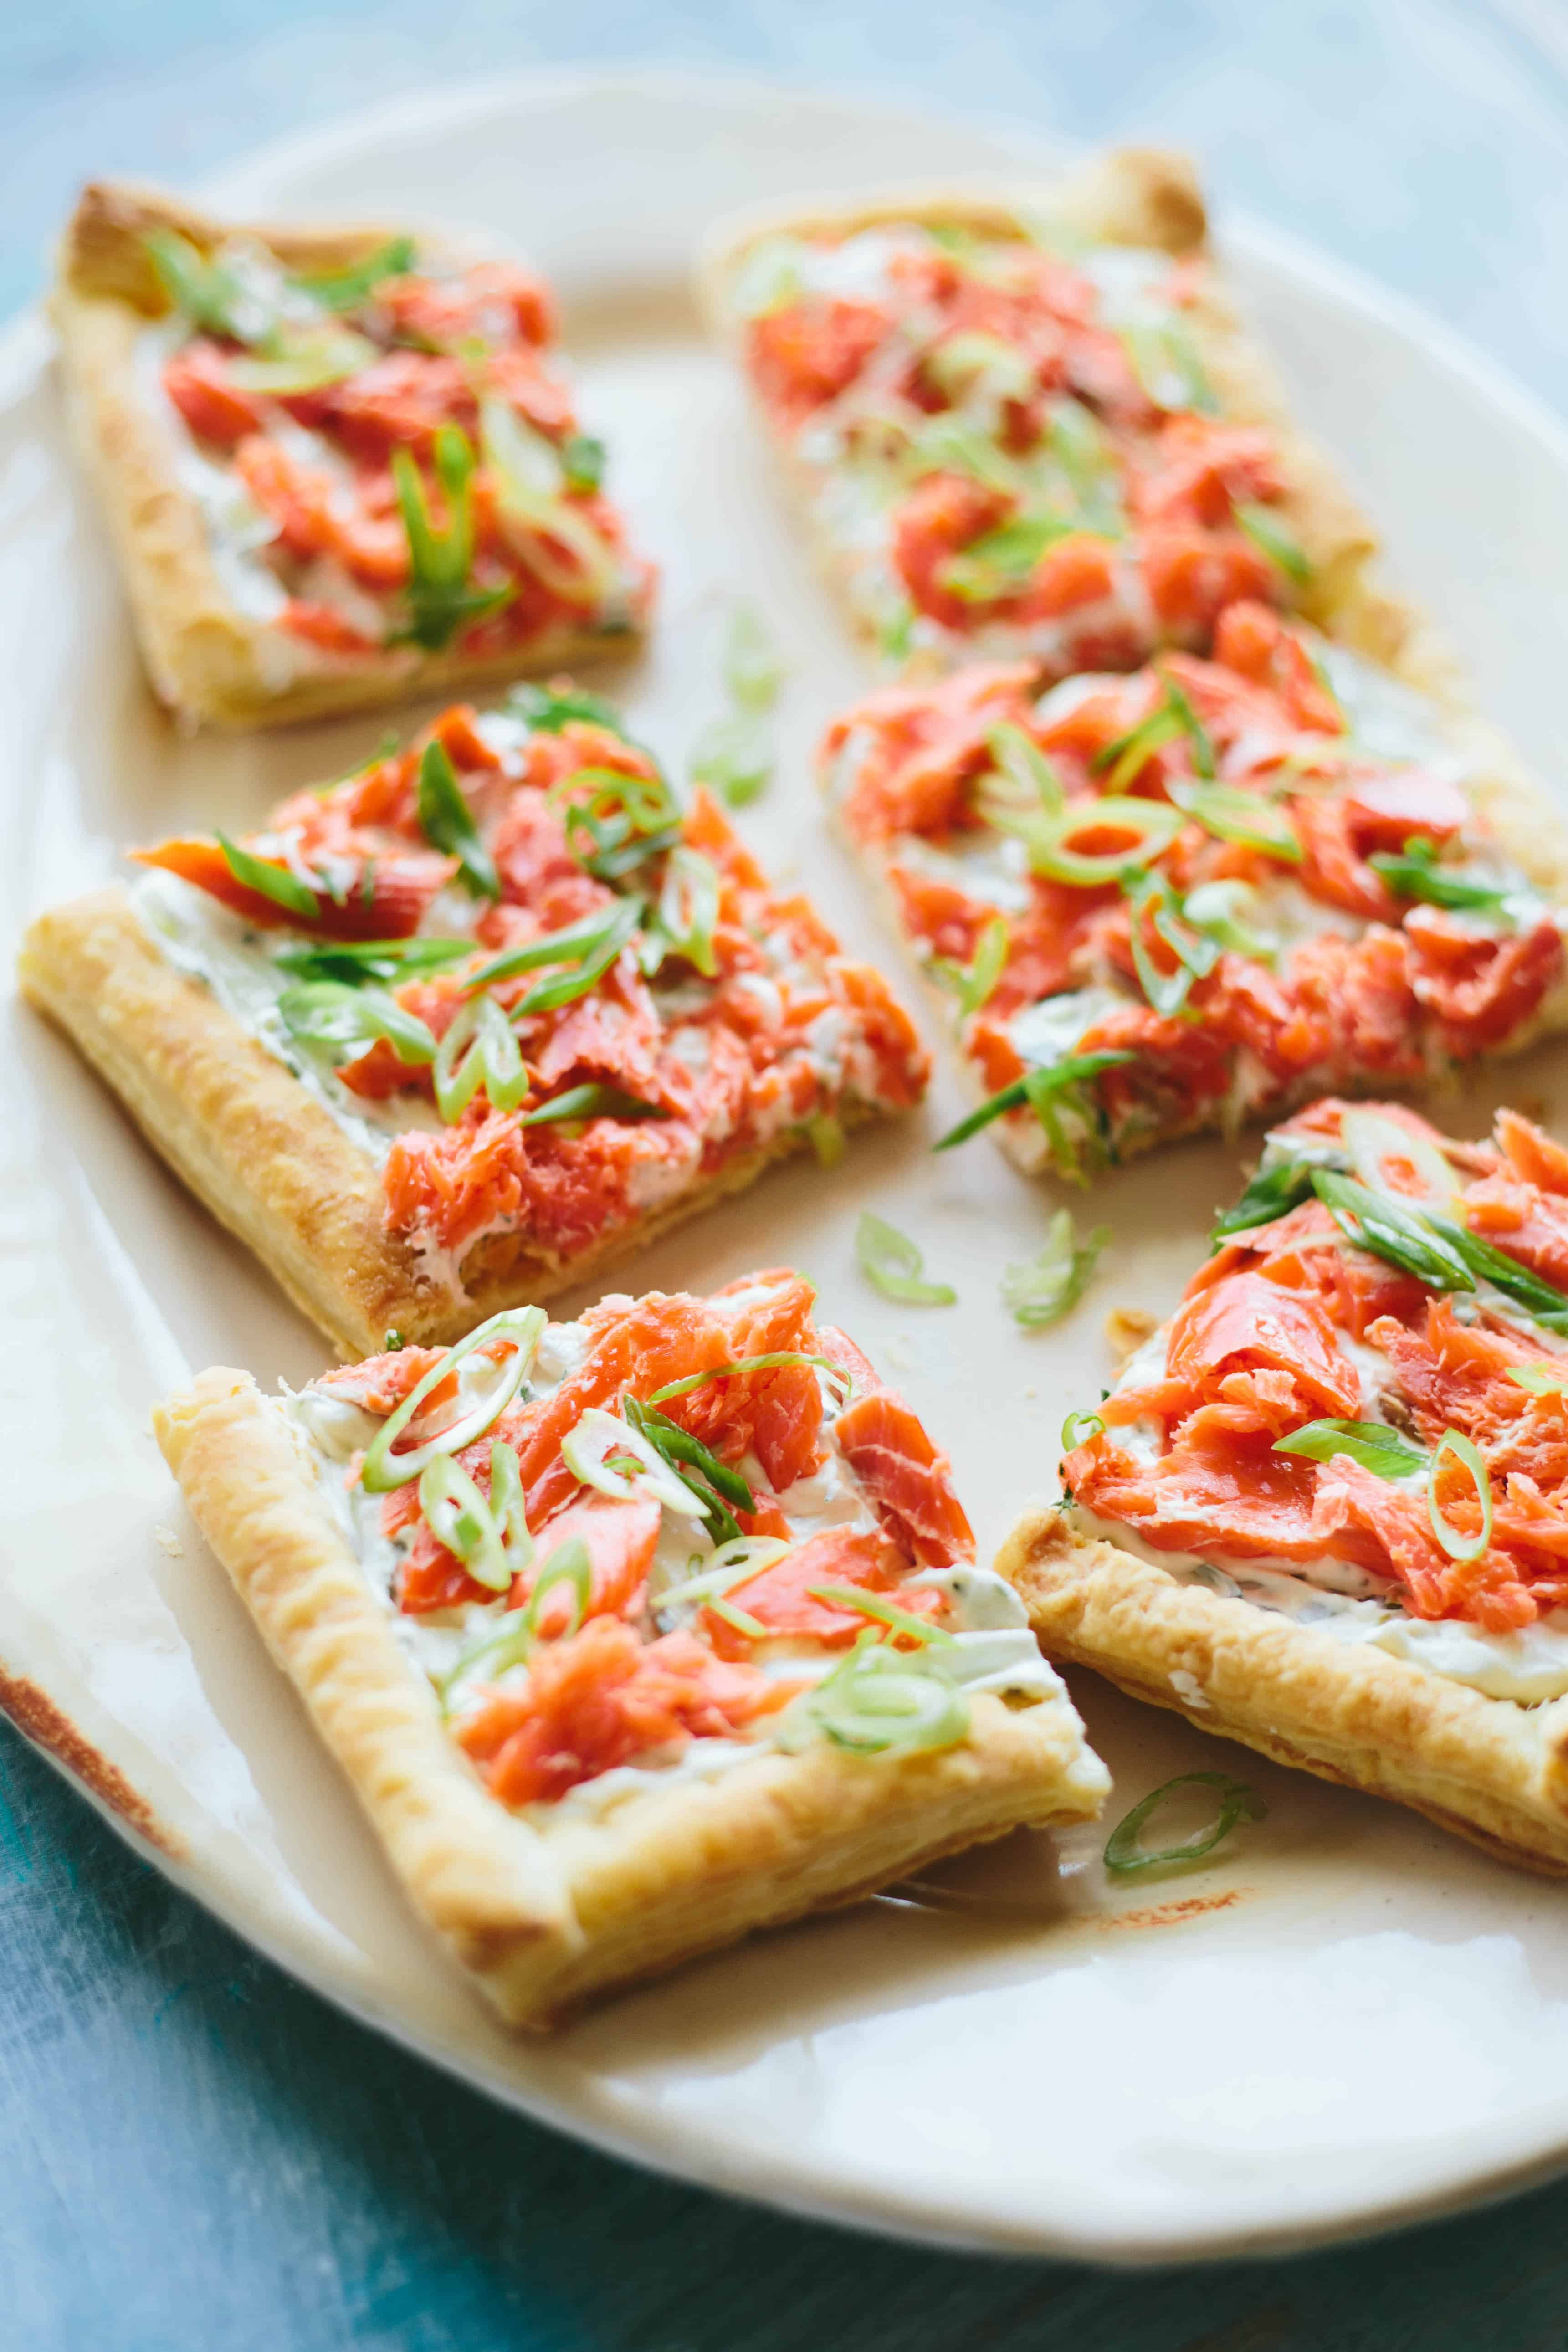 Easy Smoked Salmon Puff Pastry Tart   This simple recipe makes an easy entertaining appetizer, lunch or brunch! #smokedsalmon #puffpastry #tart #recipe #appetizer #brunch #lunch #wildsalmon   ColeyCooks.com